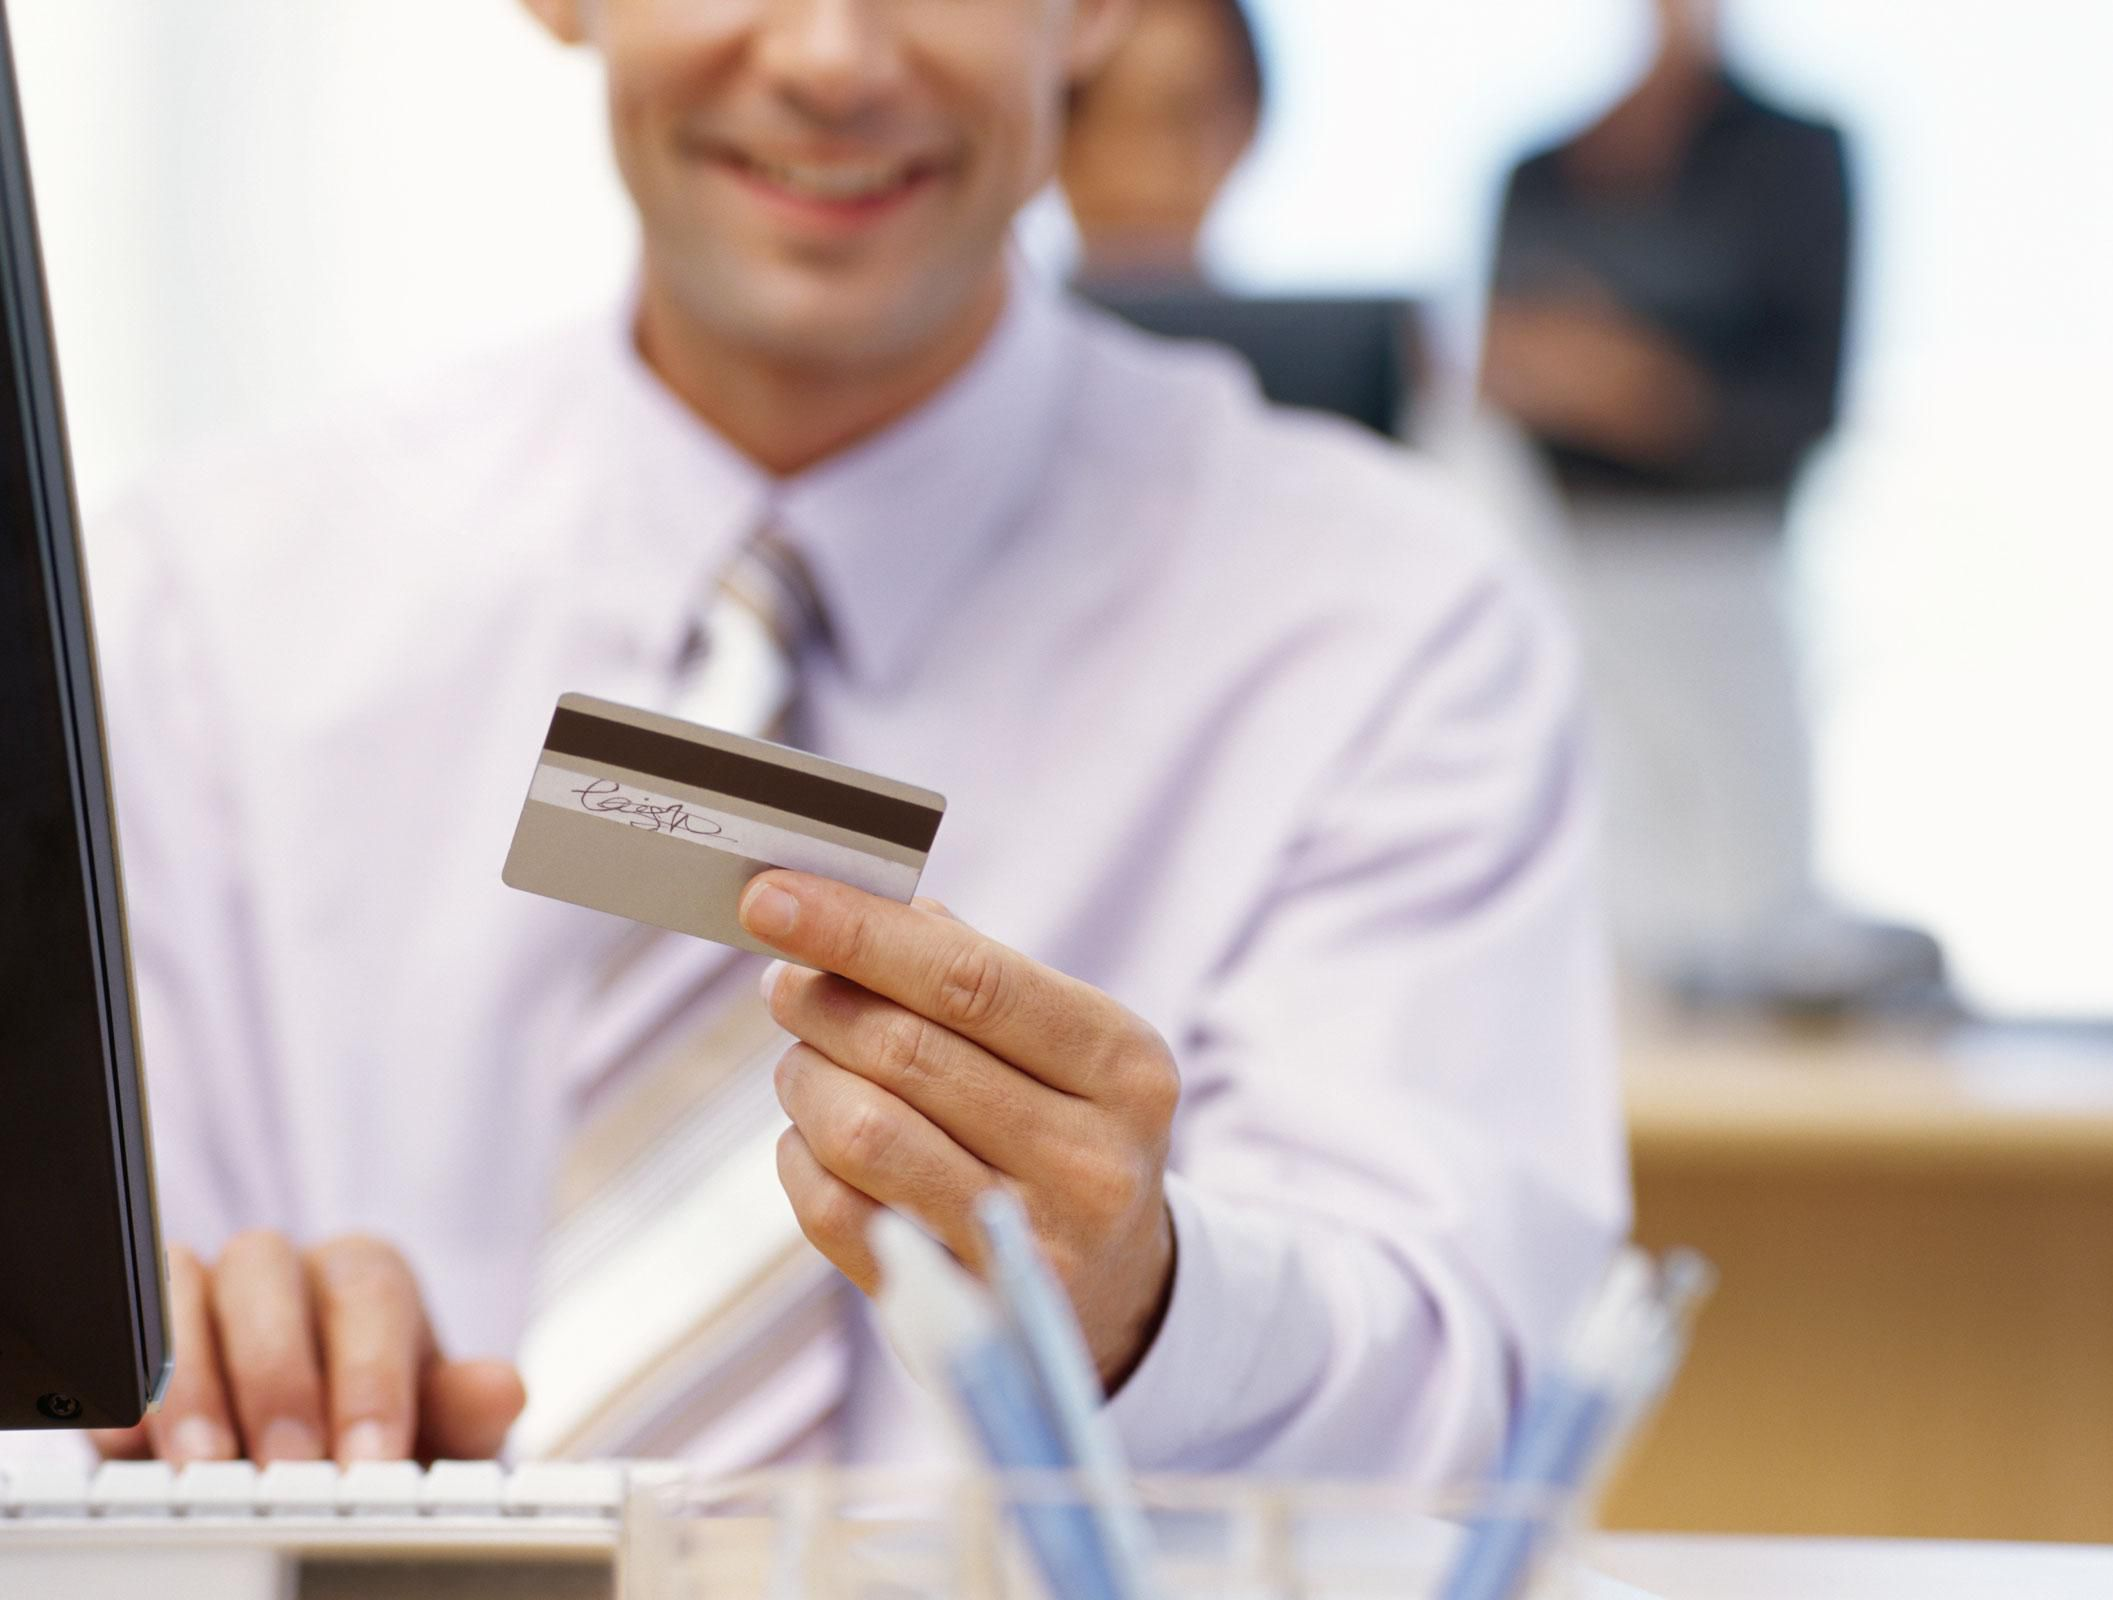 Are Credit Cards a Form of Money?